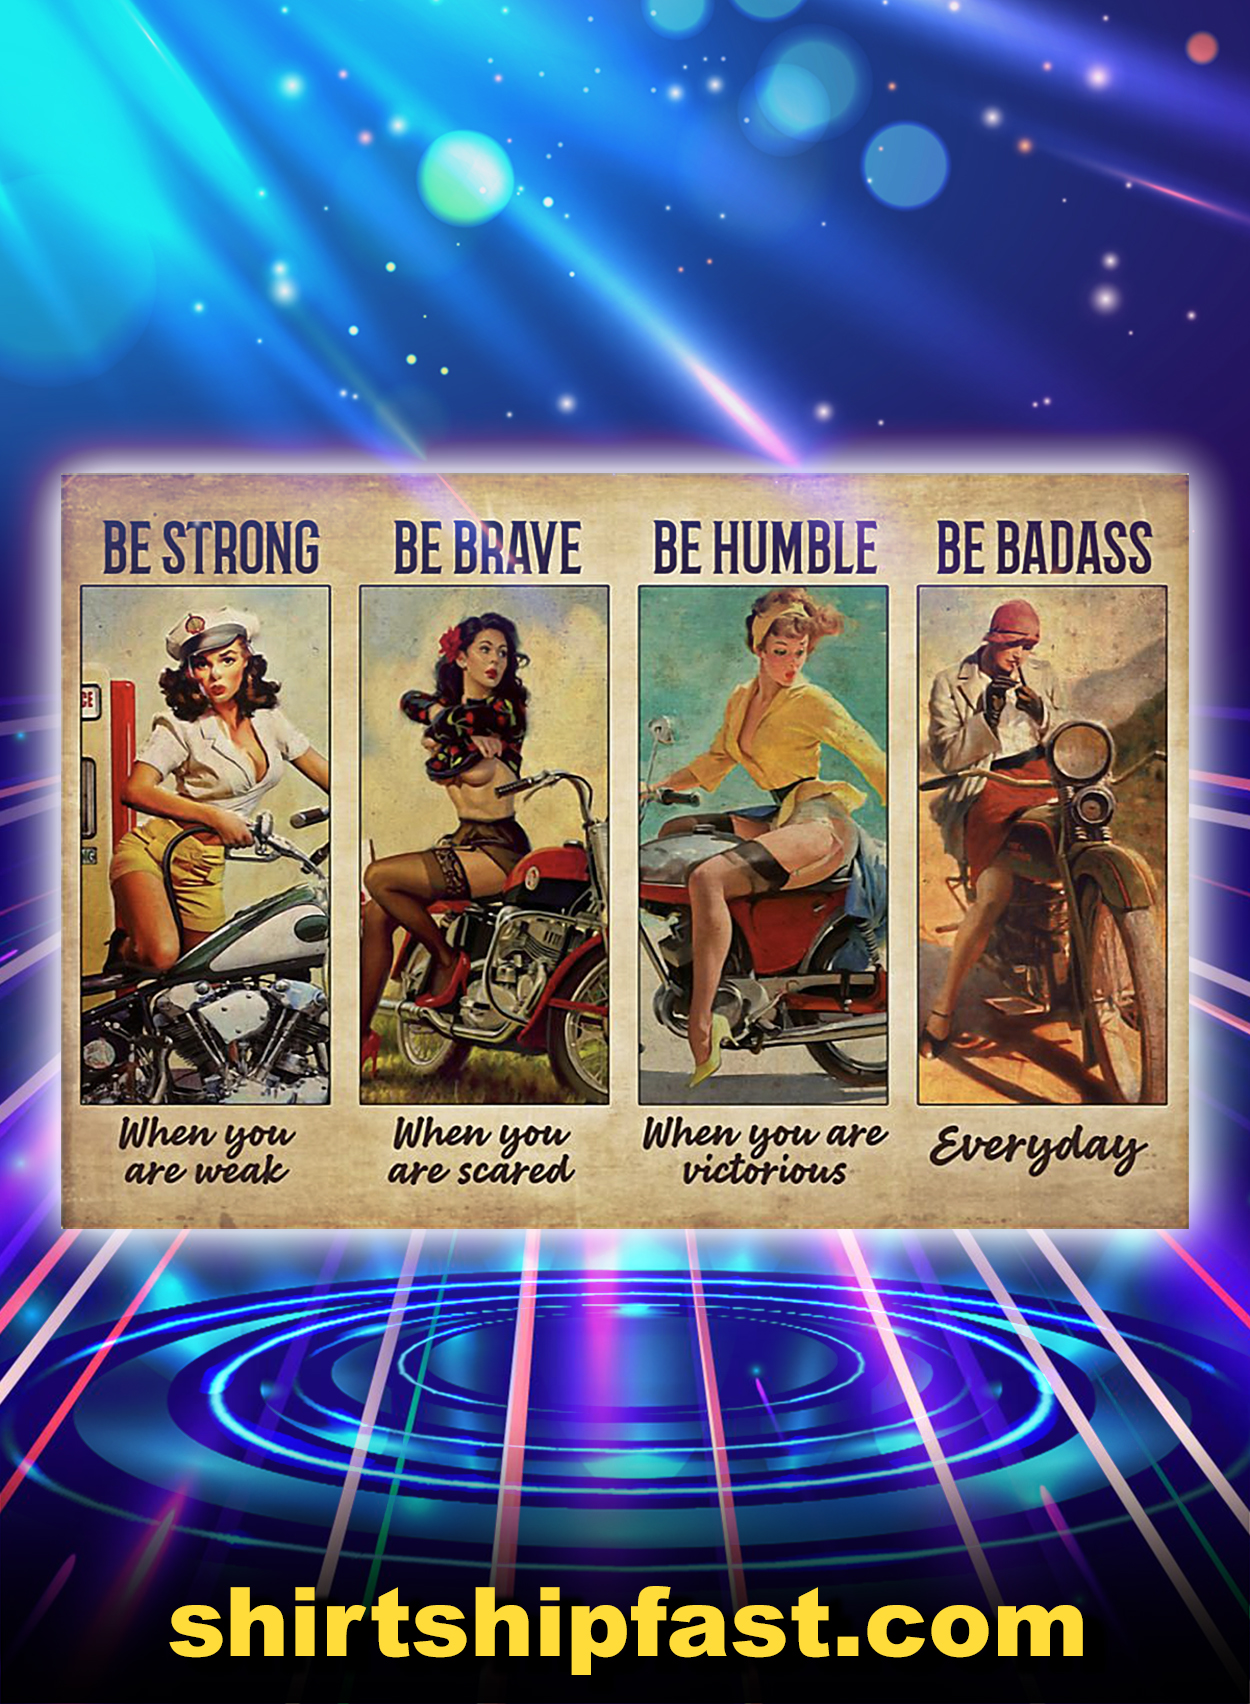 Be strong be brave be humble be badass biker girl poster - A2